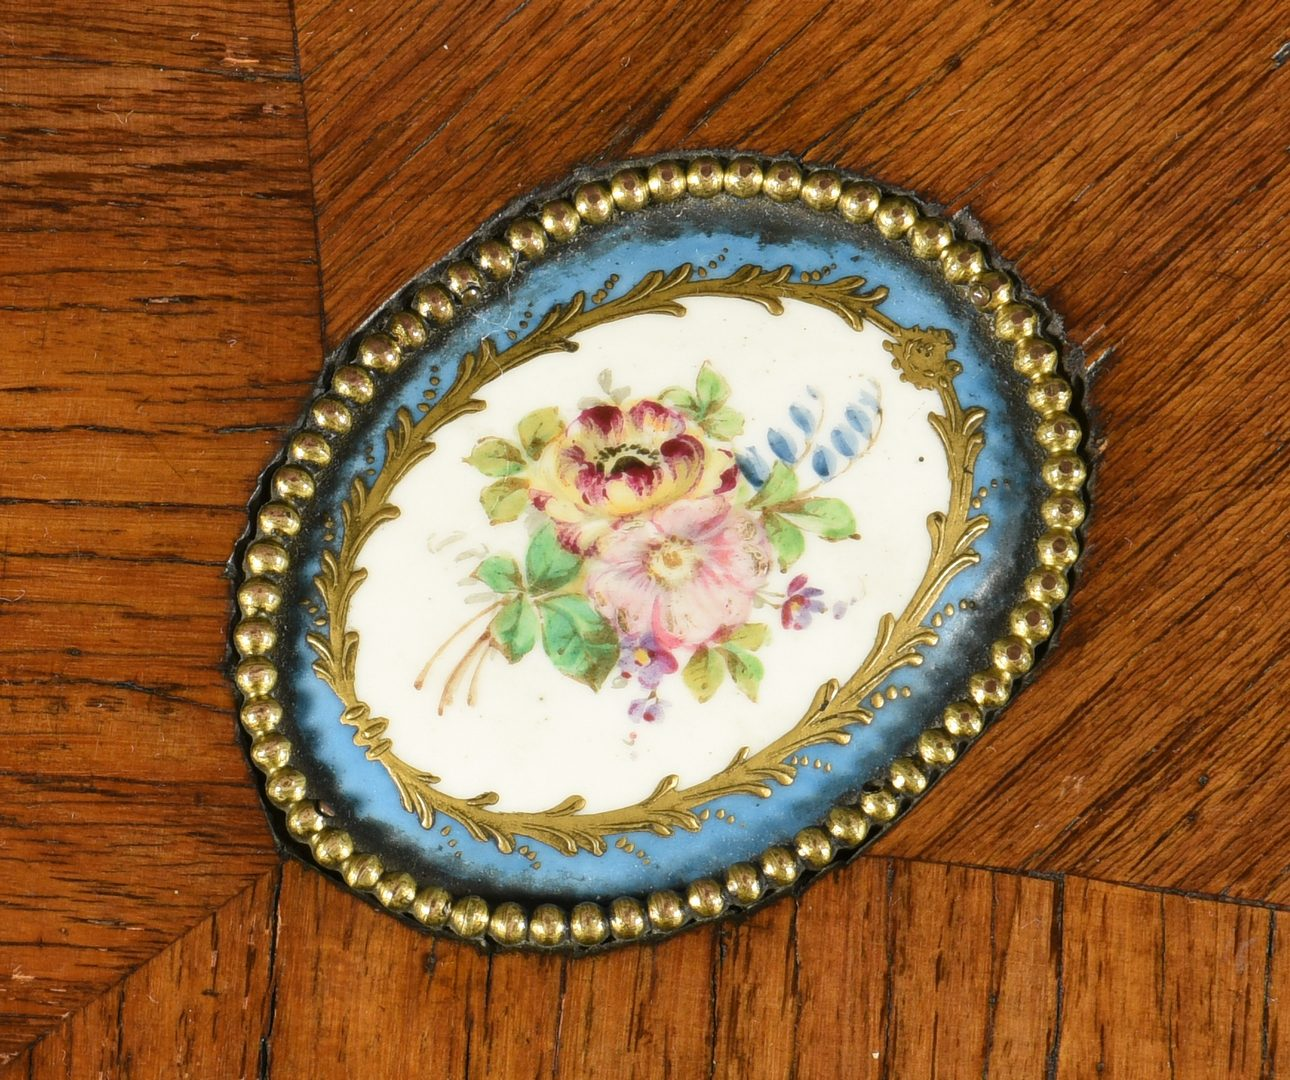 Lot 107: French Table with Porcelain Plaques